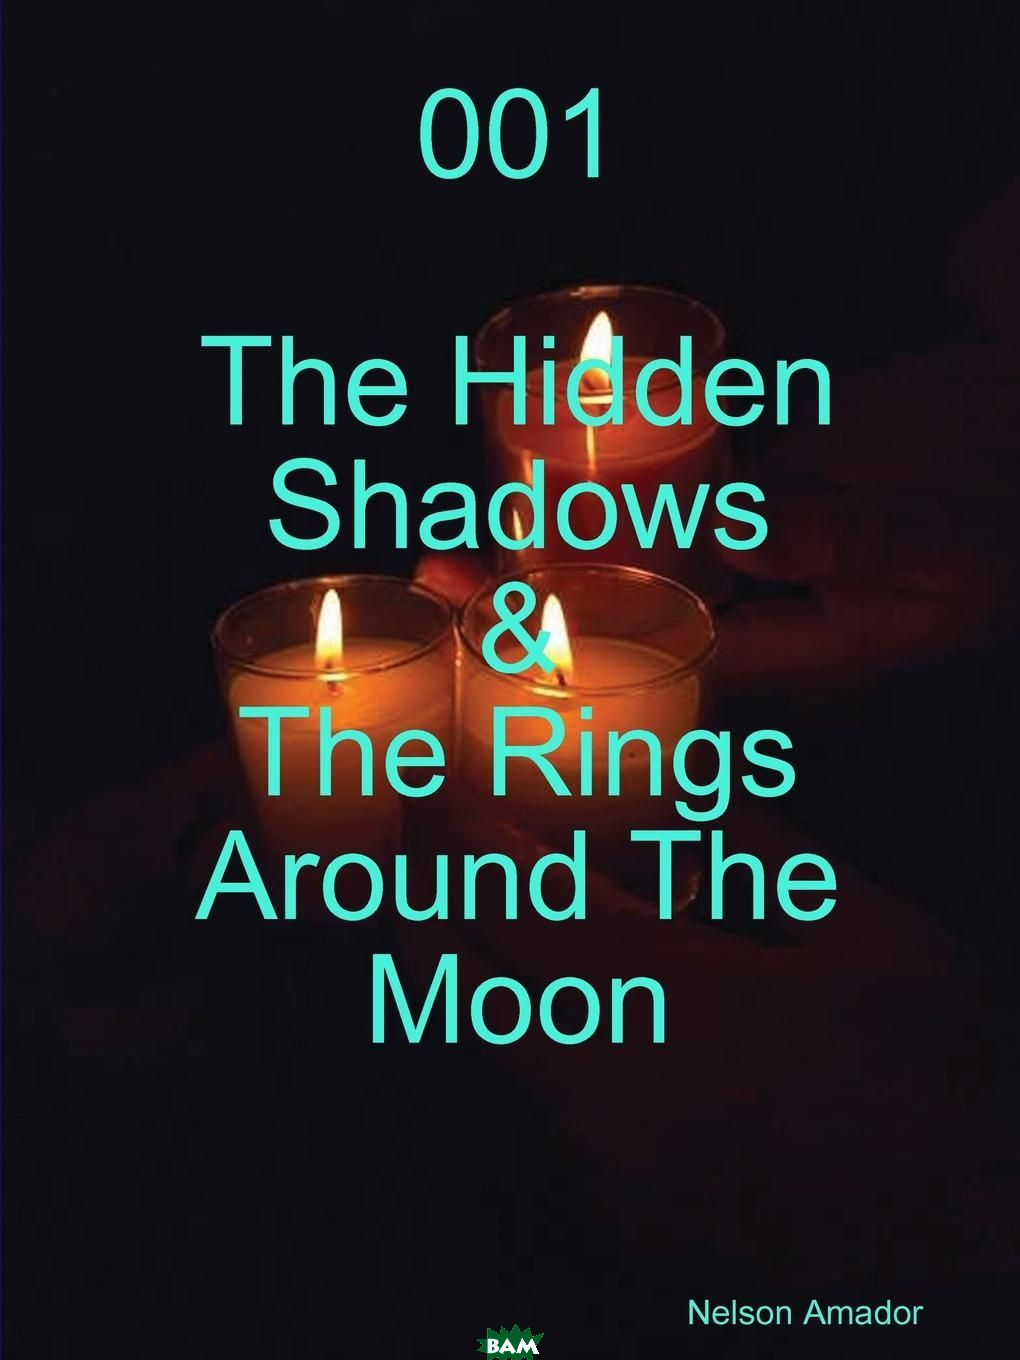 001 The Hidden Shadows . The Rings Around The Moon